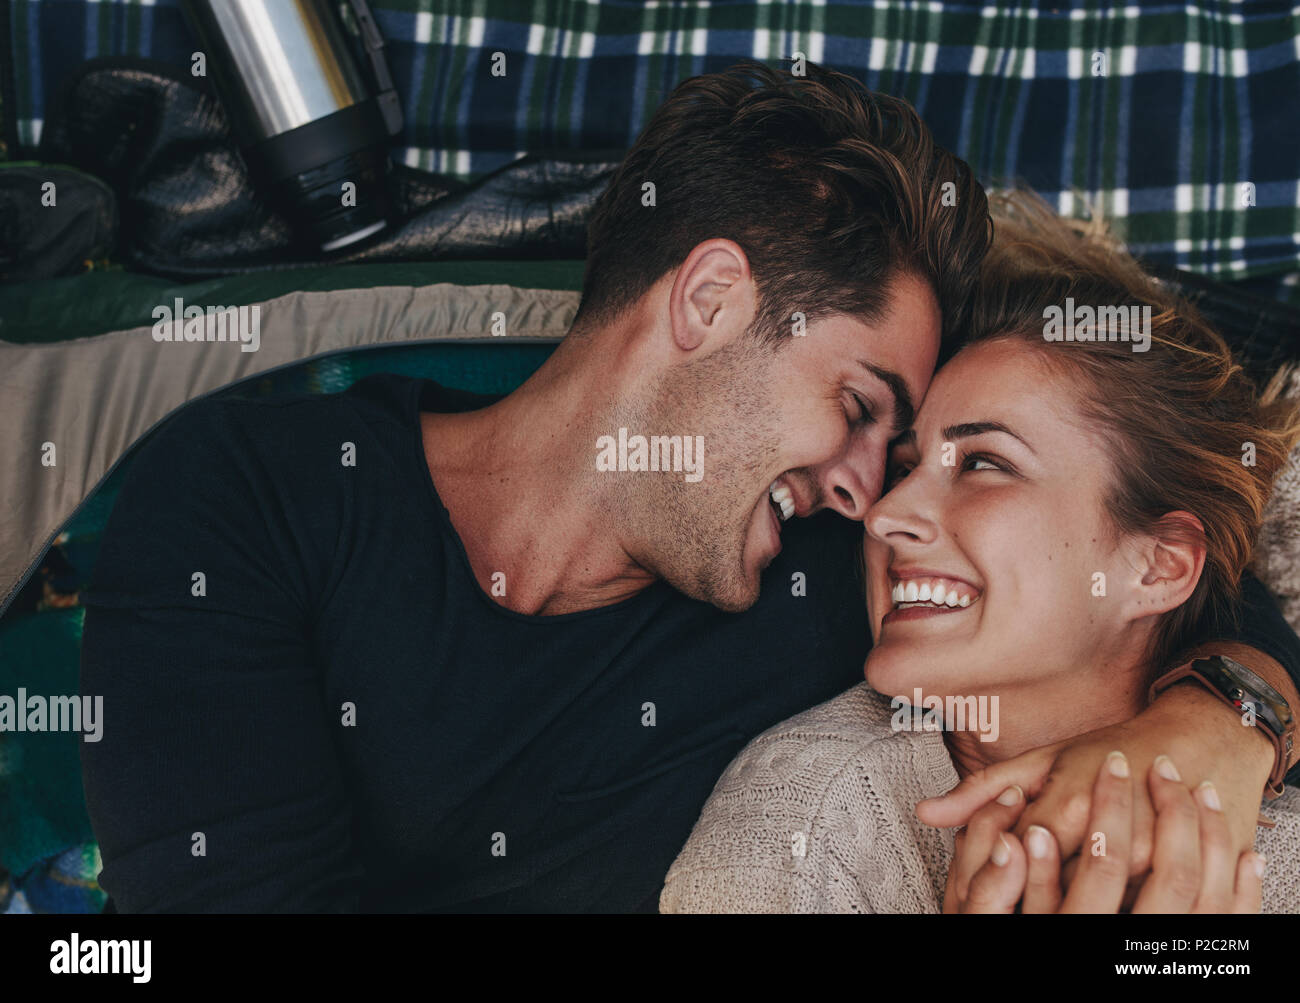 Top view for romantic couple inside a tent. Smiling man and woman lying together and looking at each other in a tent. - Stock Image